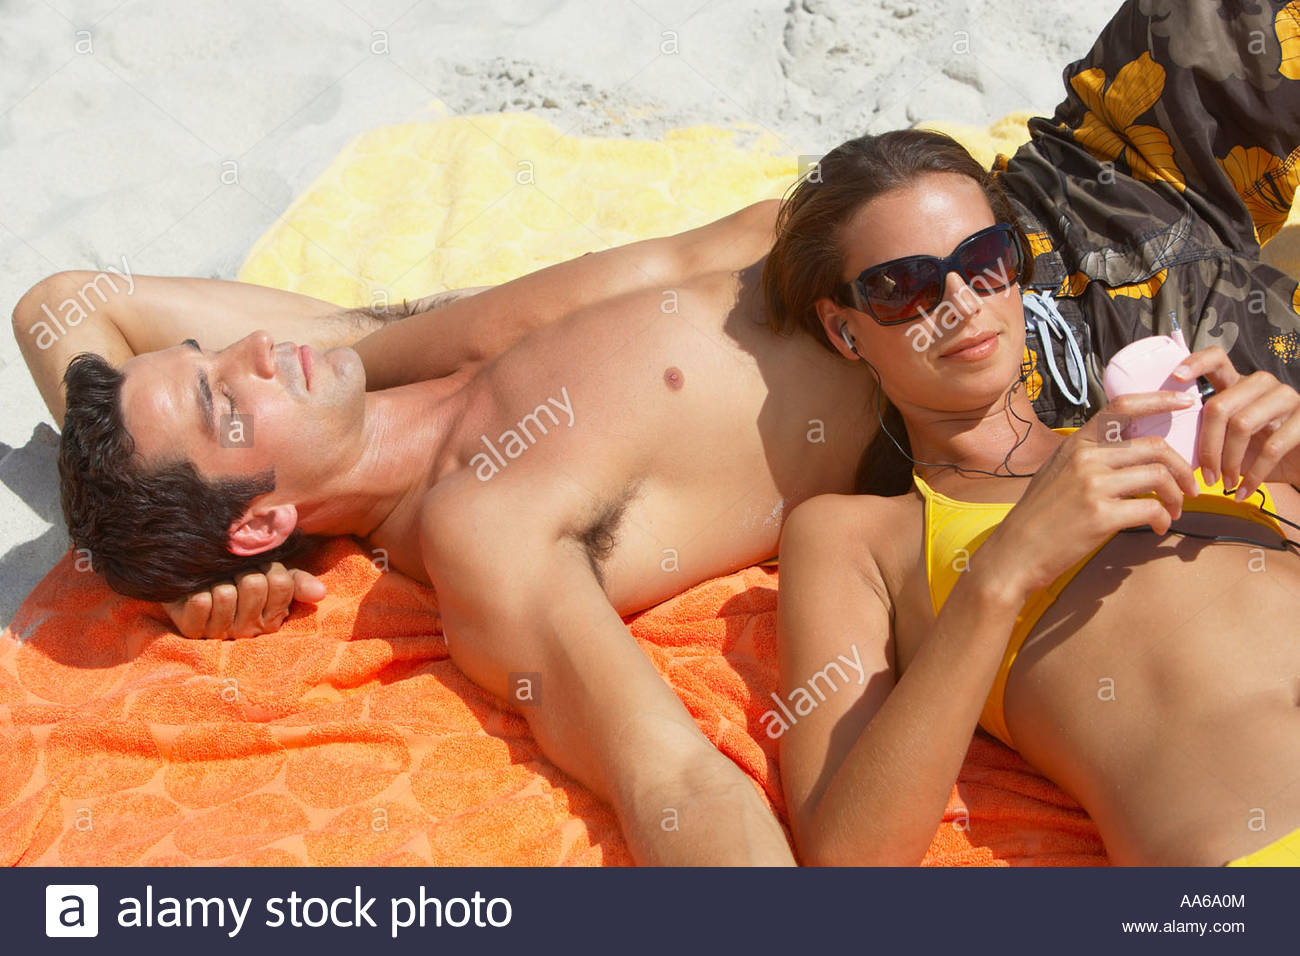 Woman in bikini with MP3 player lying down on man - Stock Image